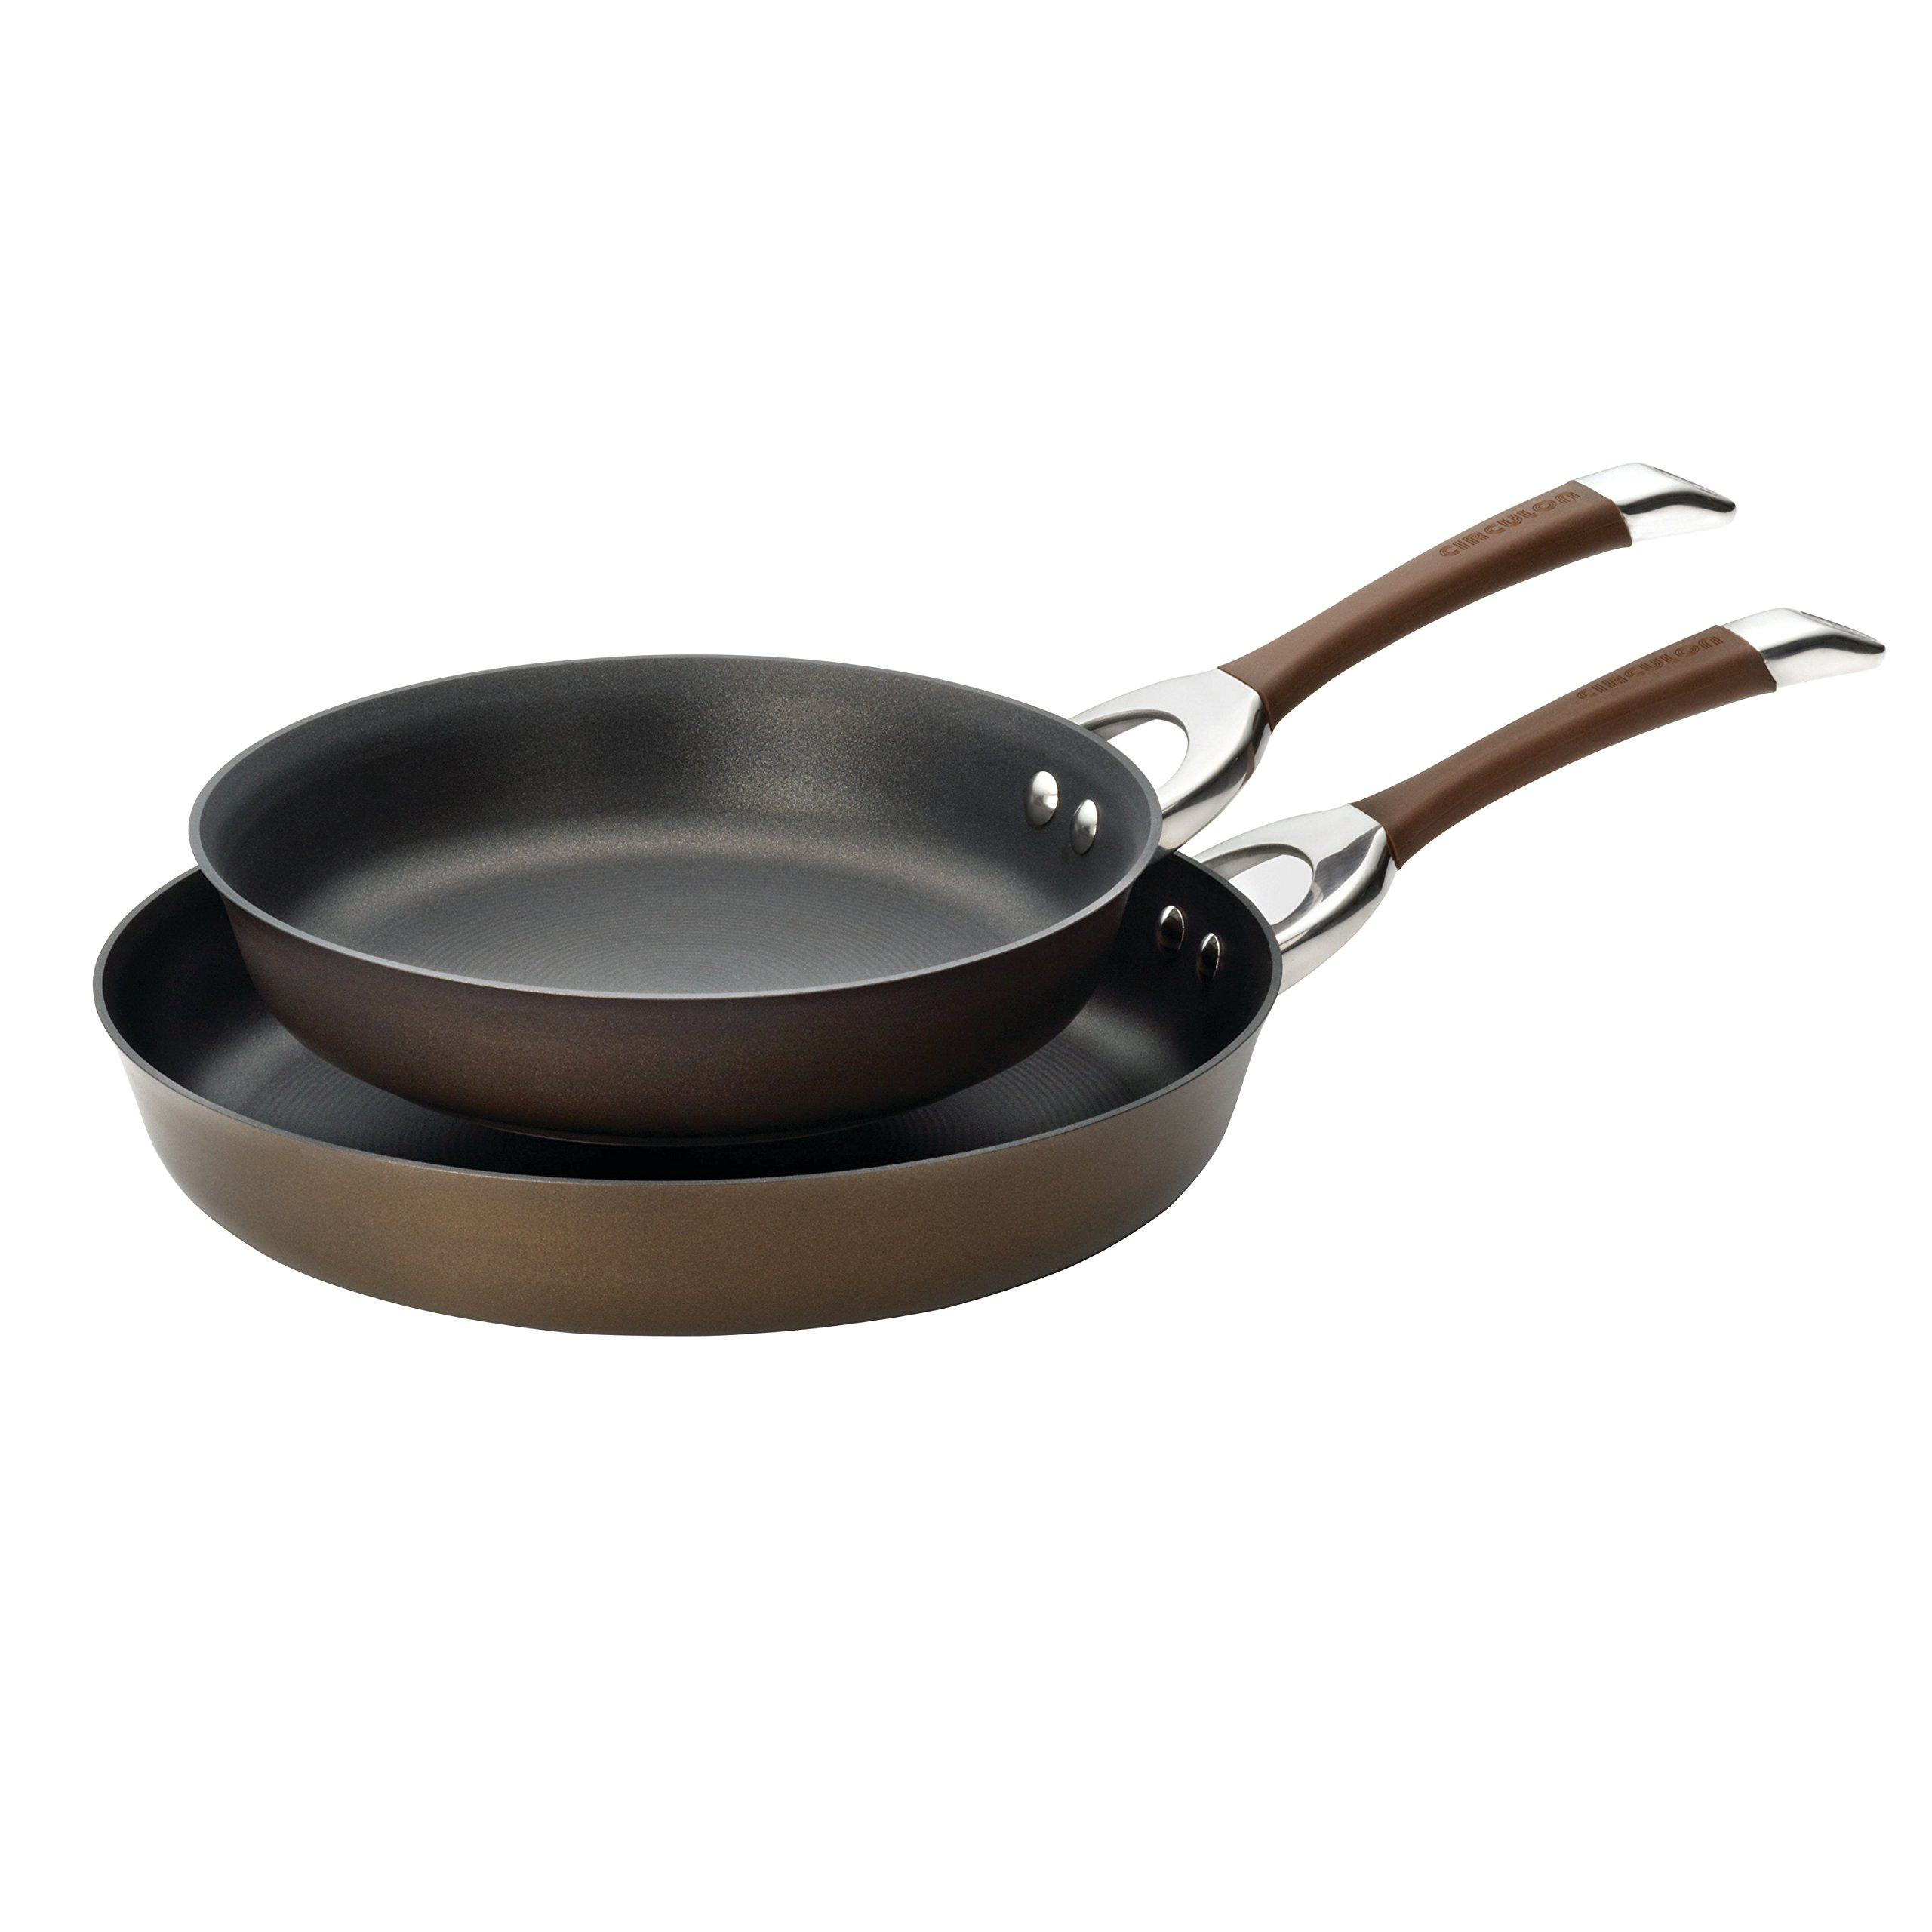 Circulon Symmetry Chocolate Hard Anodized Nonstick 10-Inch and 12-Inch Skillet Twin Pack